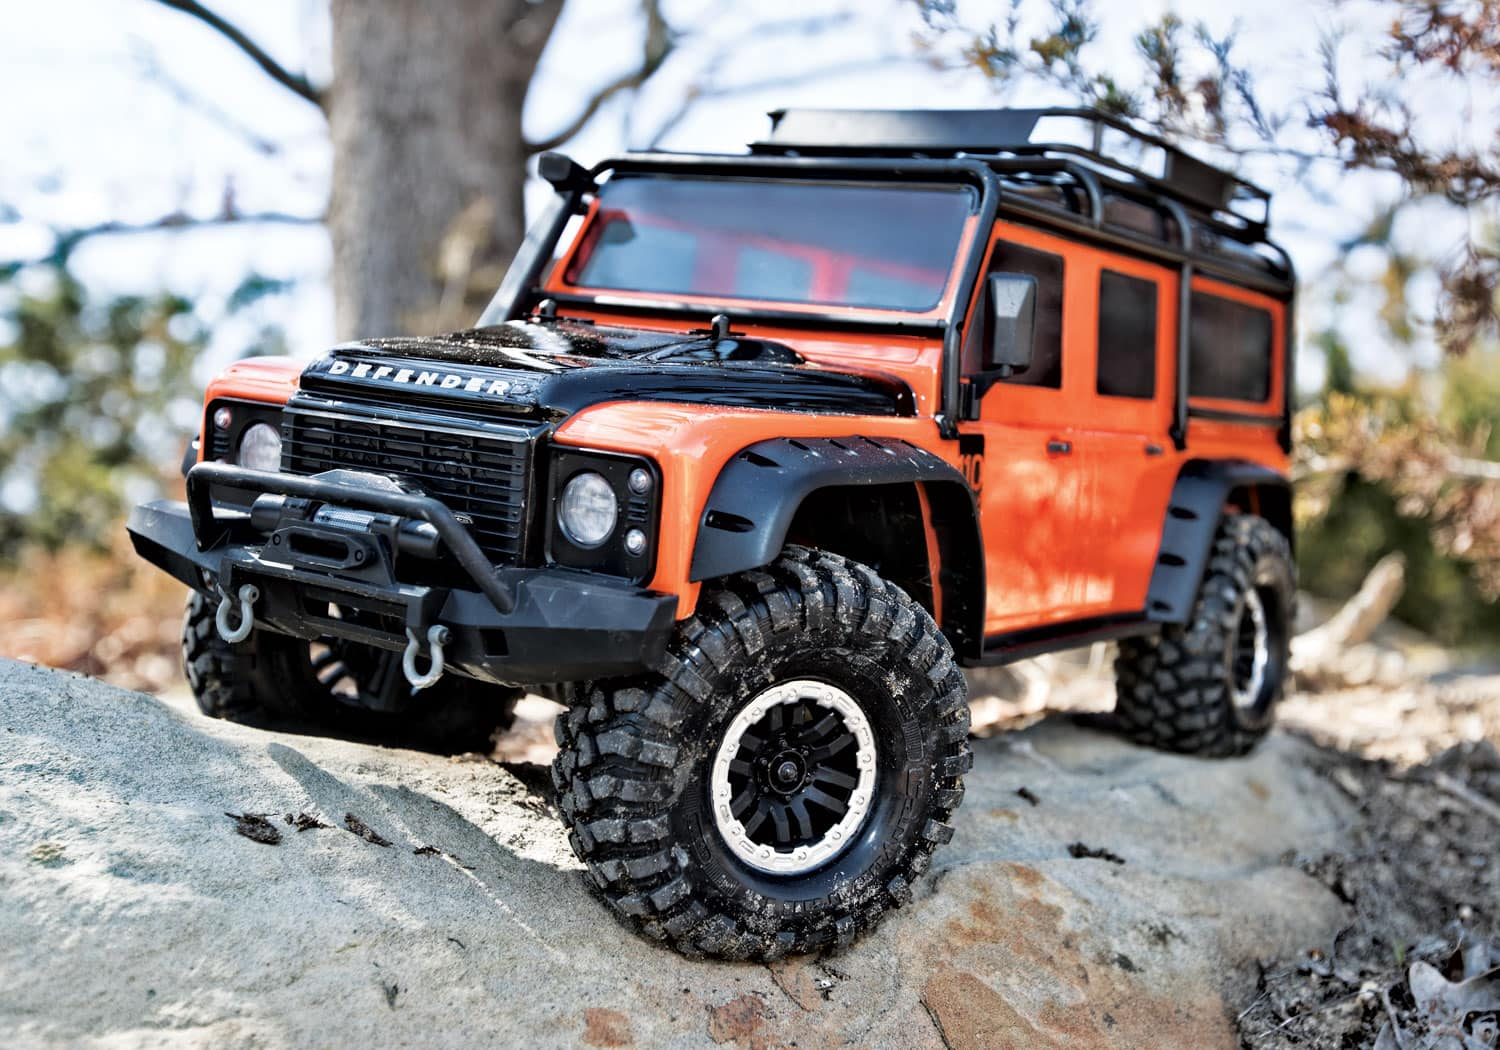 See it in Action: Traxxas TRX-4 Adventure Edition Body Kit [Video]